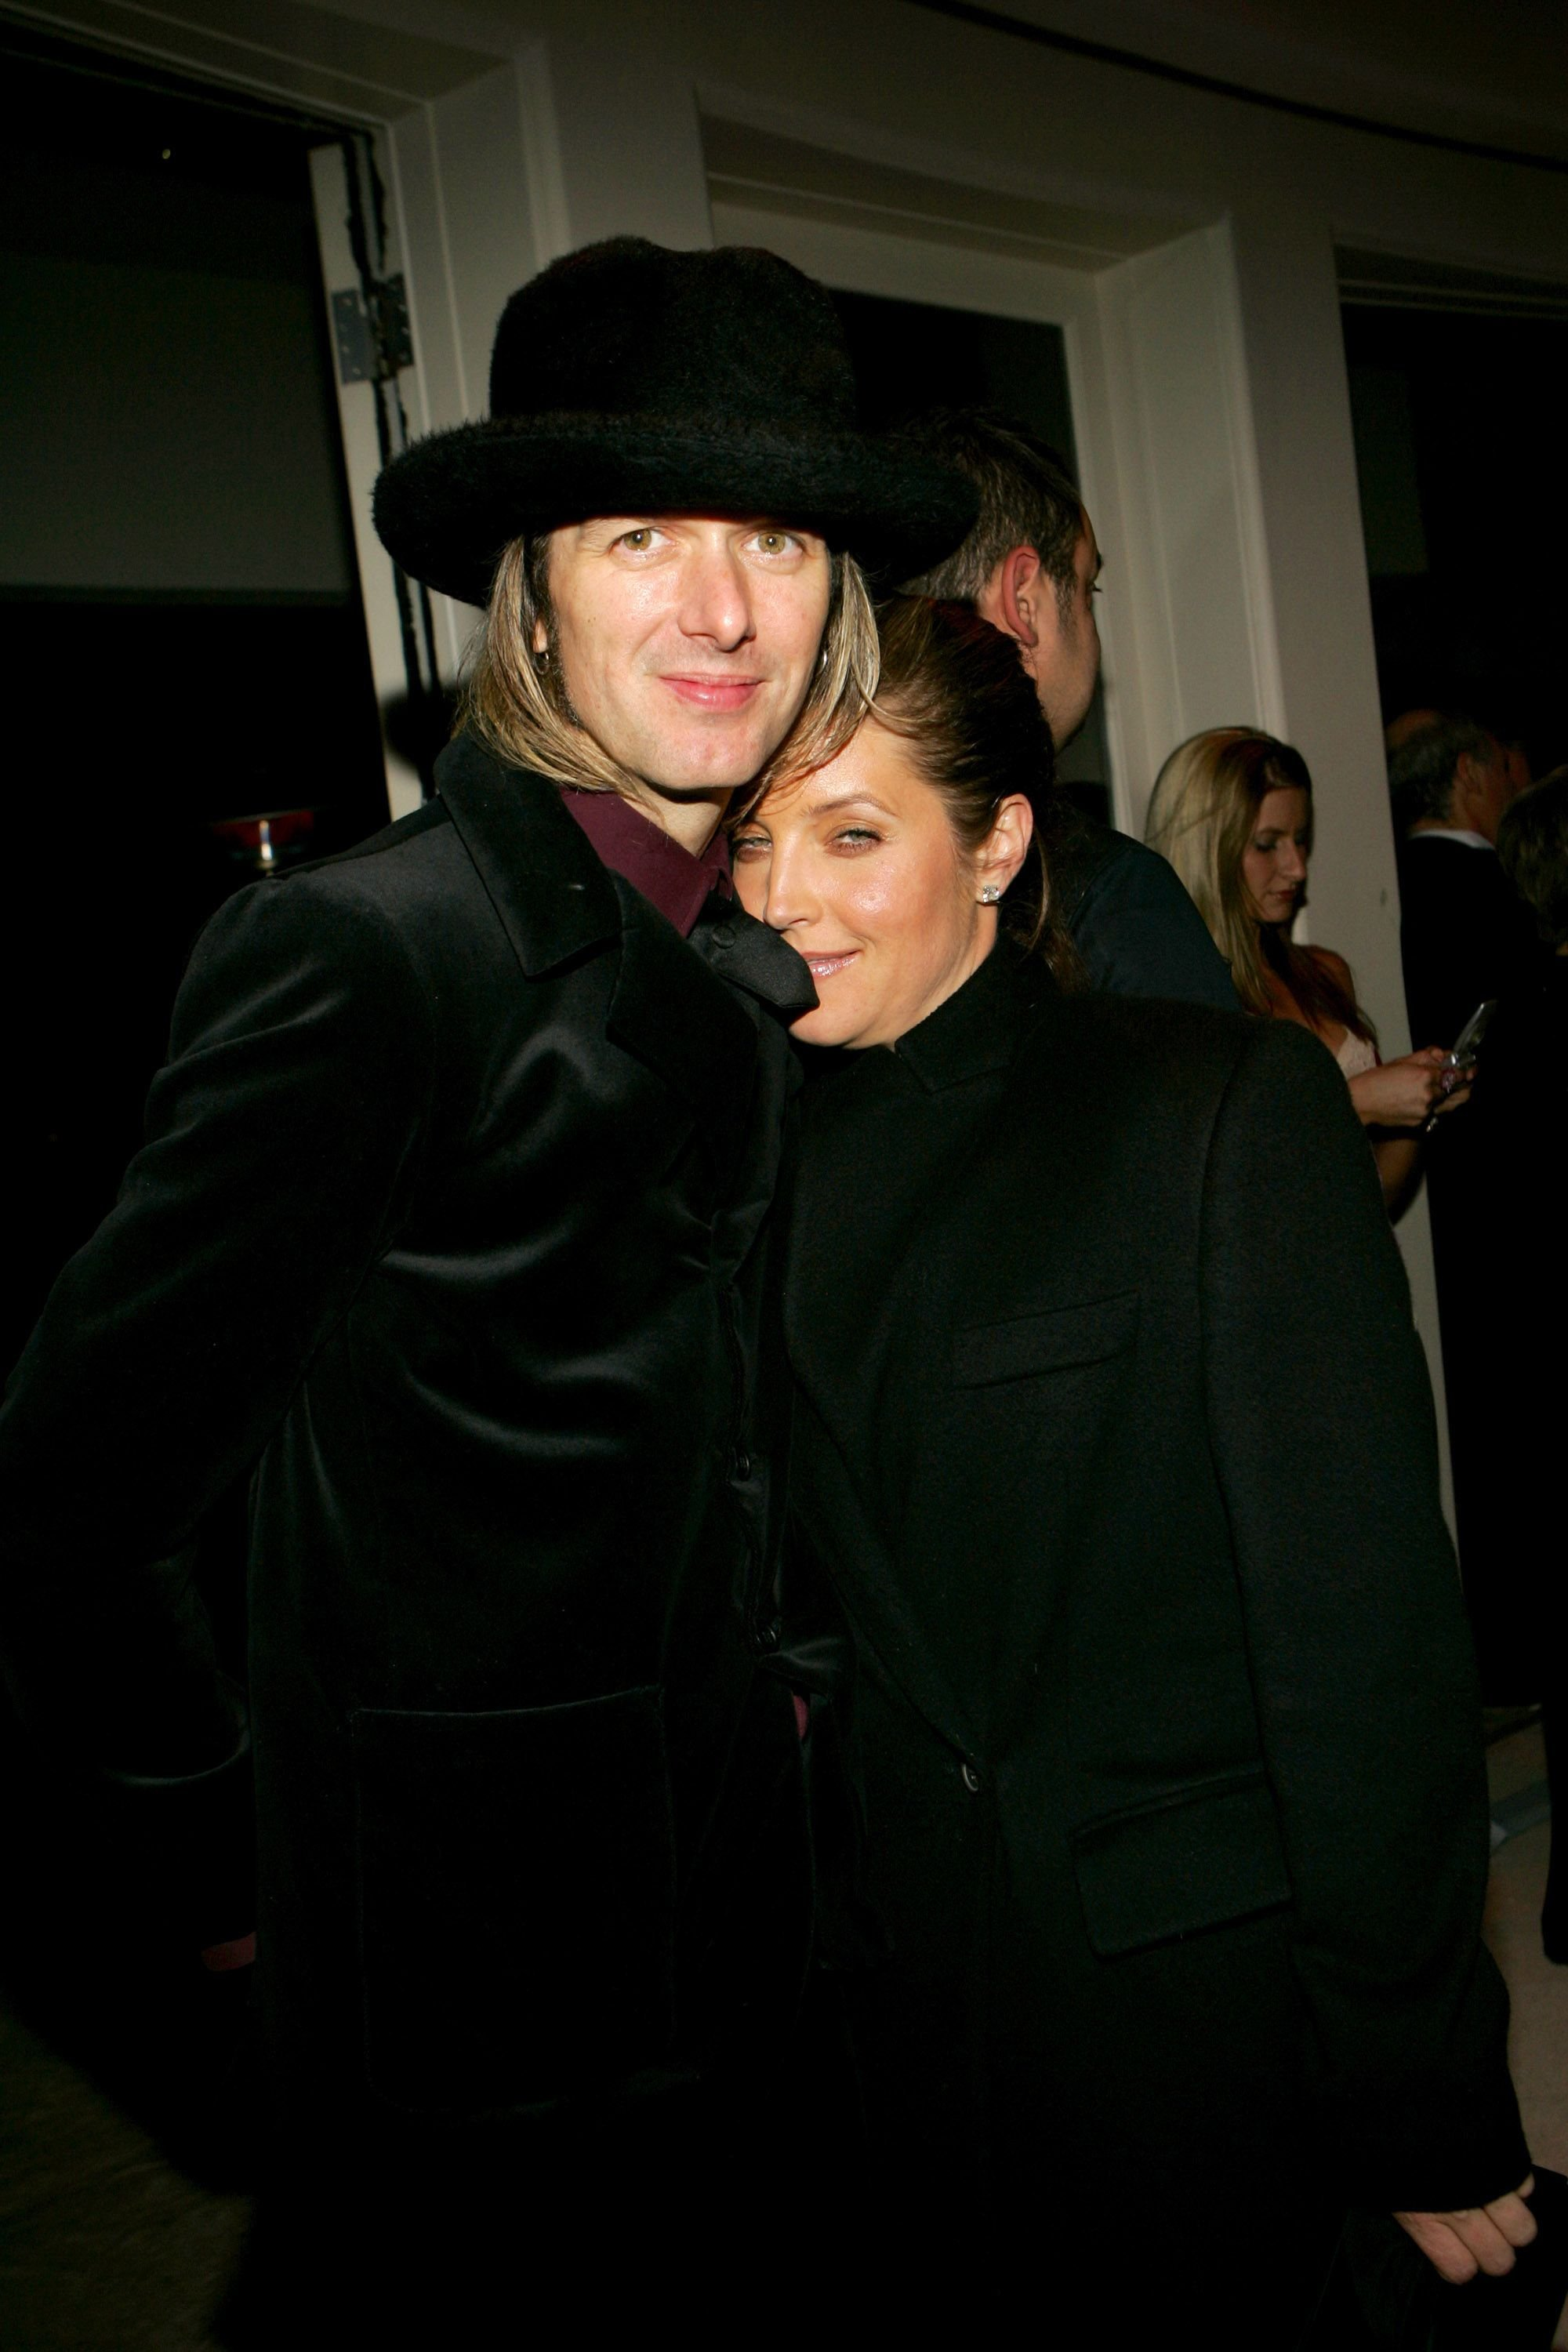 Michael Lockwood and Lisa Marie Presley at a U2 Post-Grammy Party on February 13, 2005 | Photo: KMazur/WireImage/Getty Images